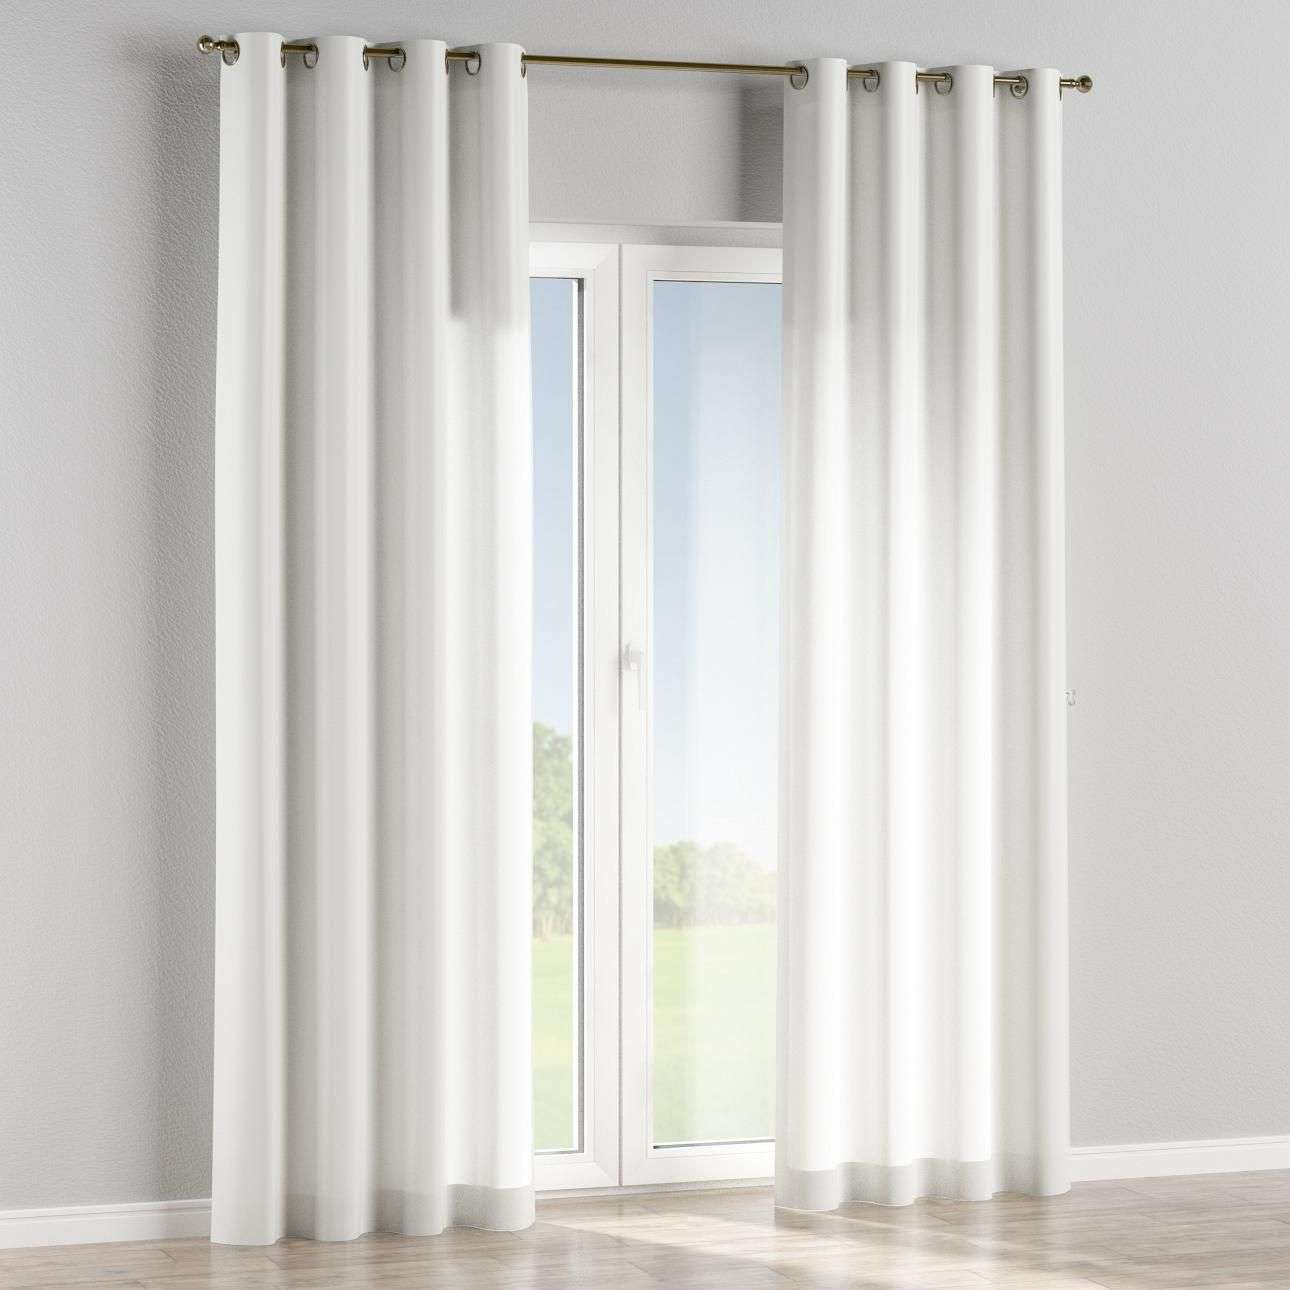 Eyelet lined curtains in collection Flowers, fabric: 140-98